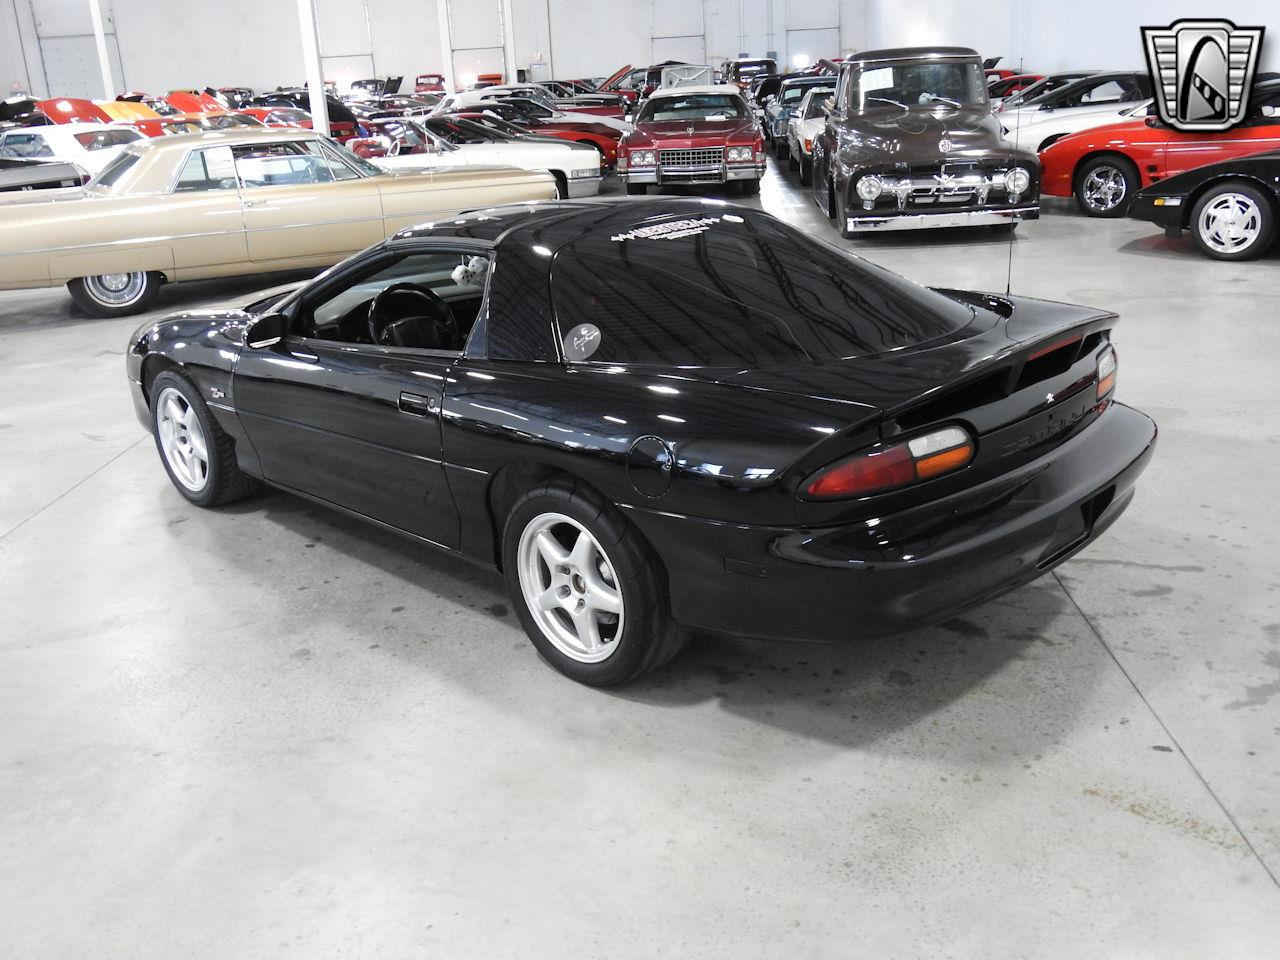 2000 Chevrolet Camaro (CC-1342076) for sale in O'Fallon, Illinois